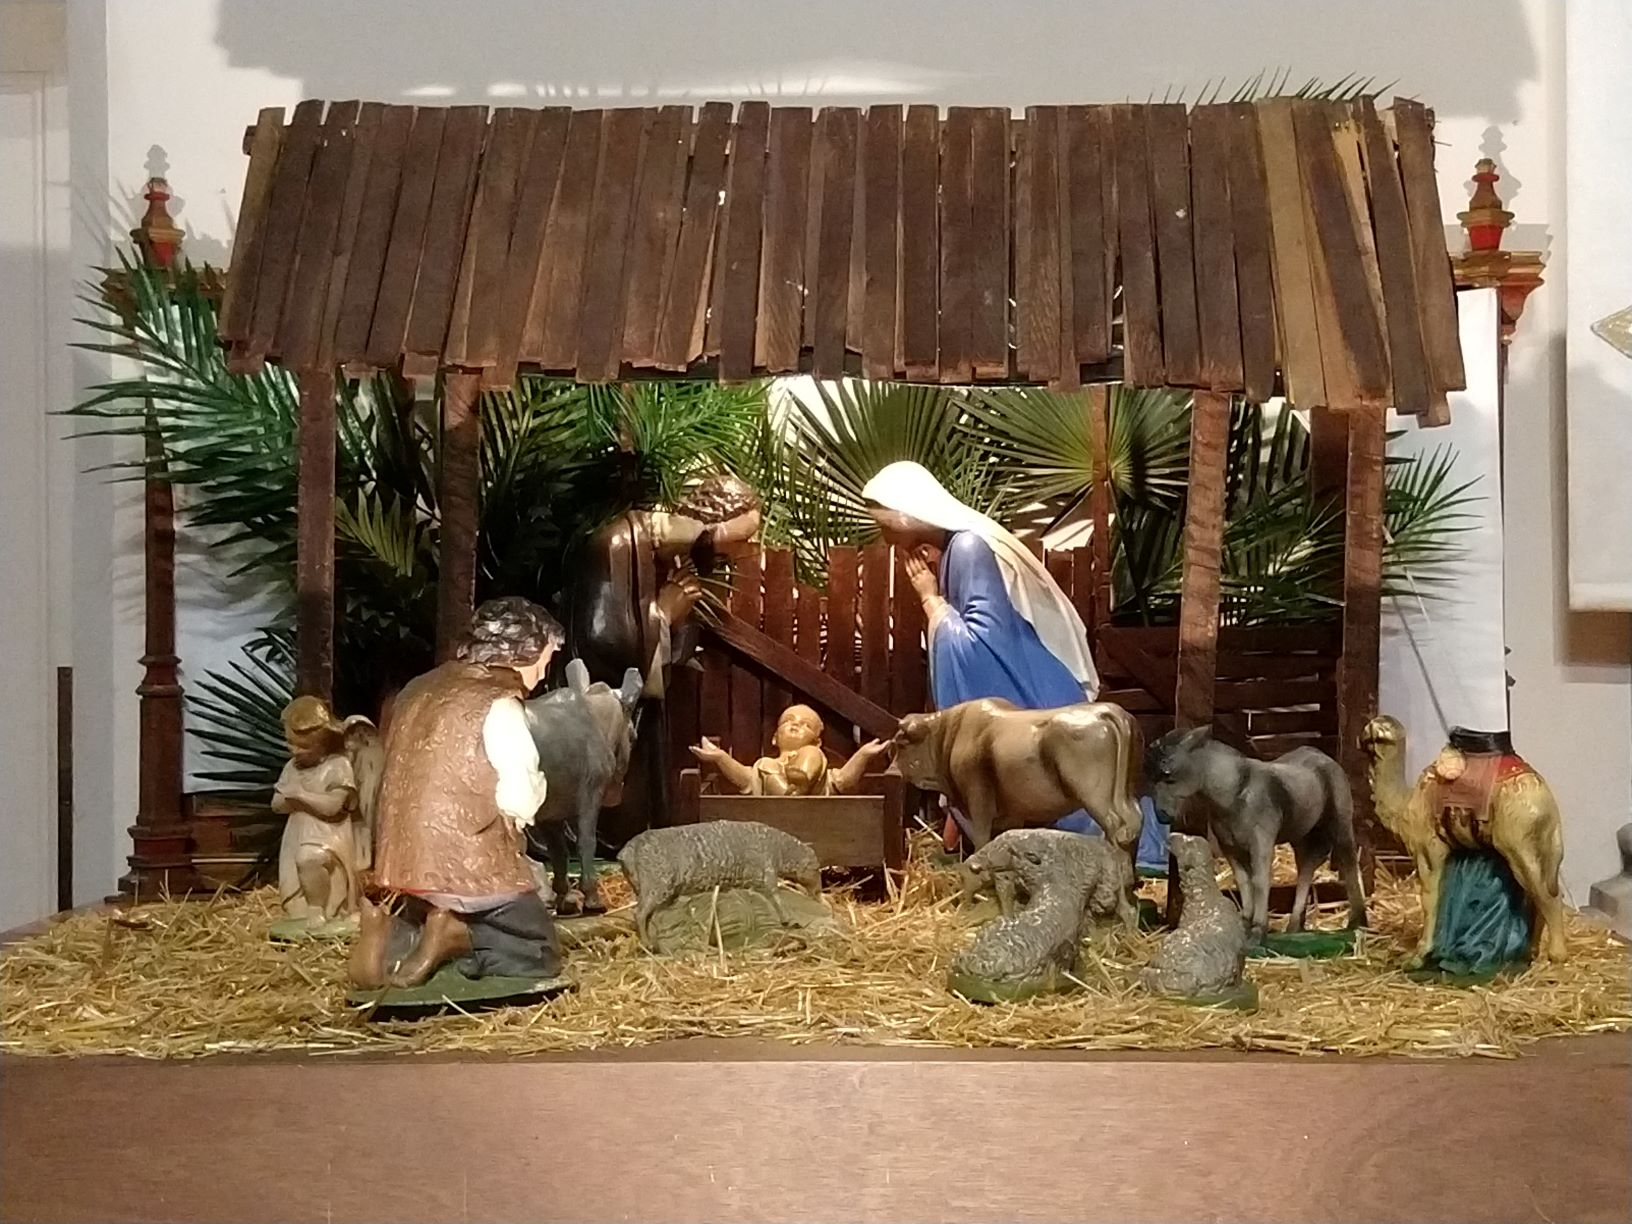 A photo of the nativity scene at Immaculate Conception Church